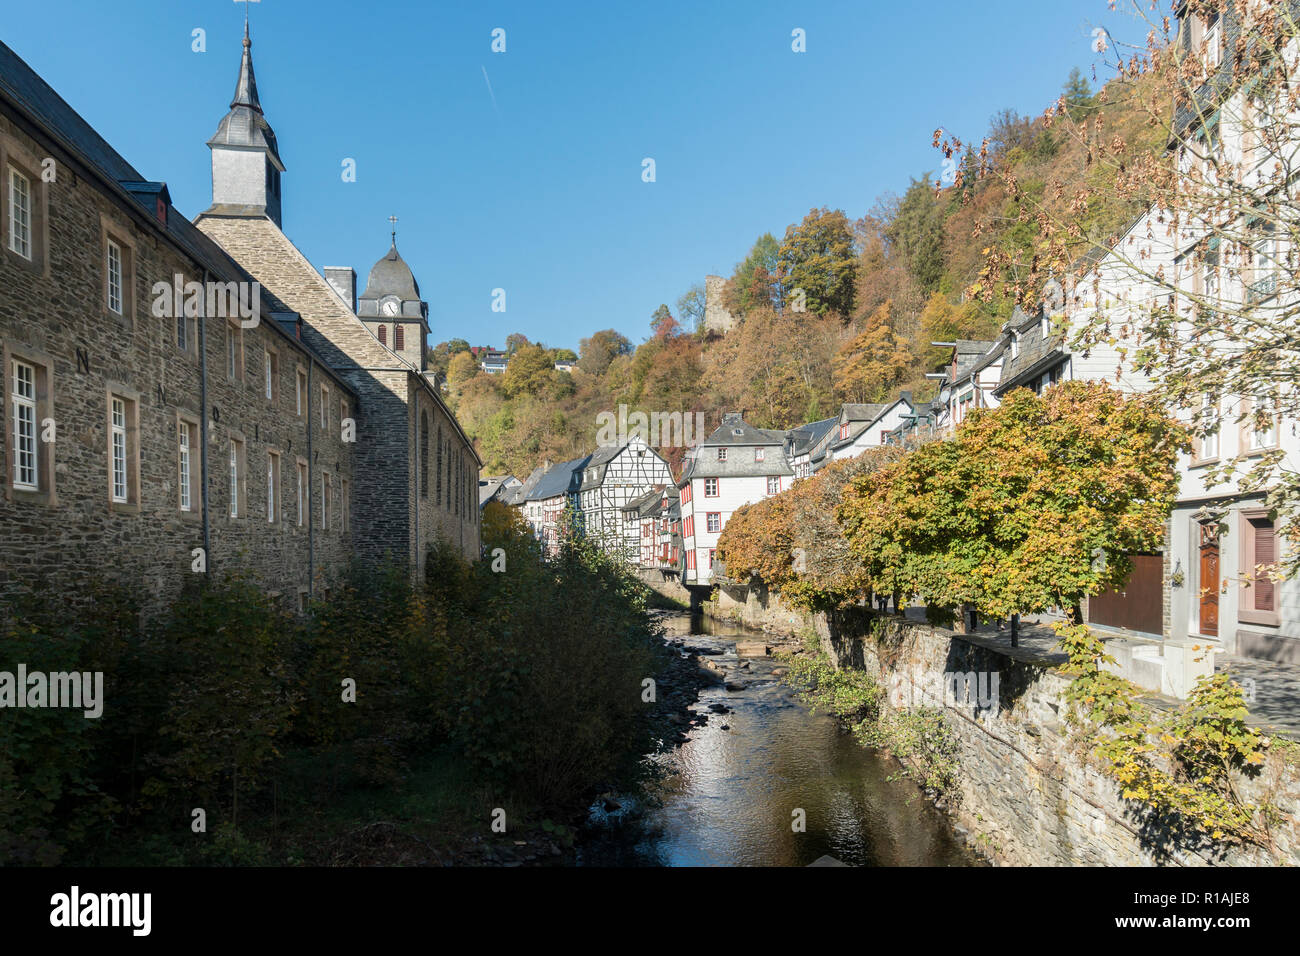 The Center Of Aachen High Resolution Stock Photography And Images Page 2 Alamy